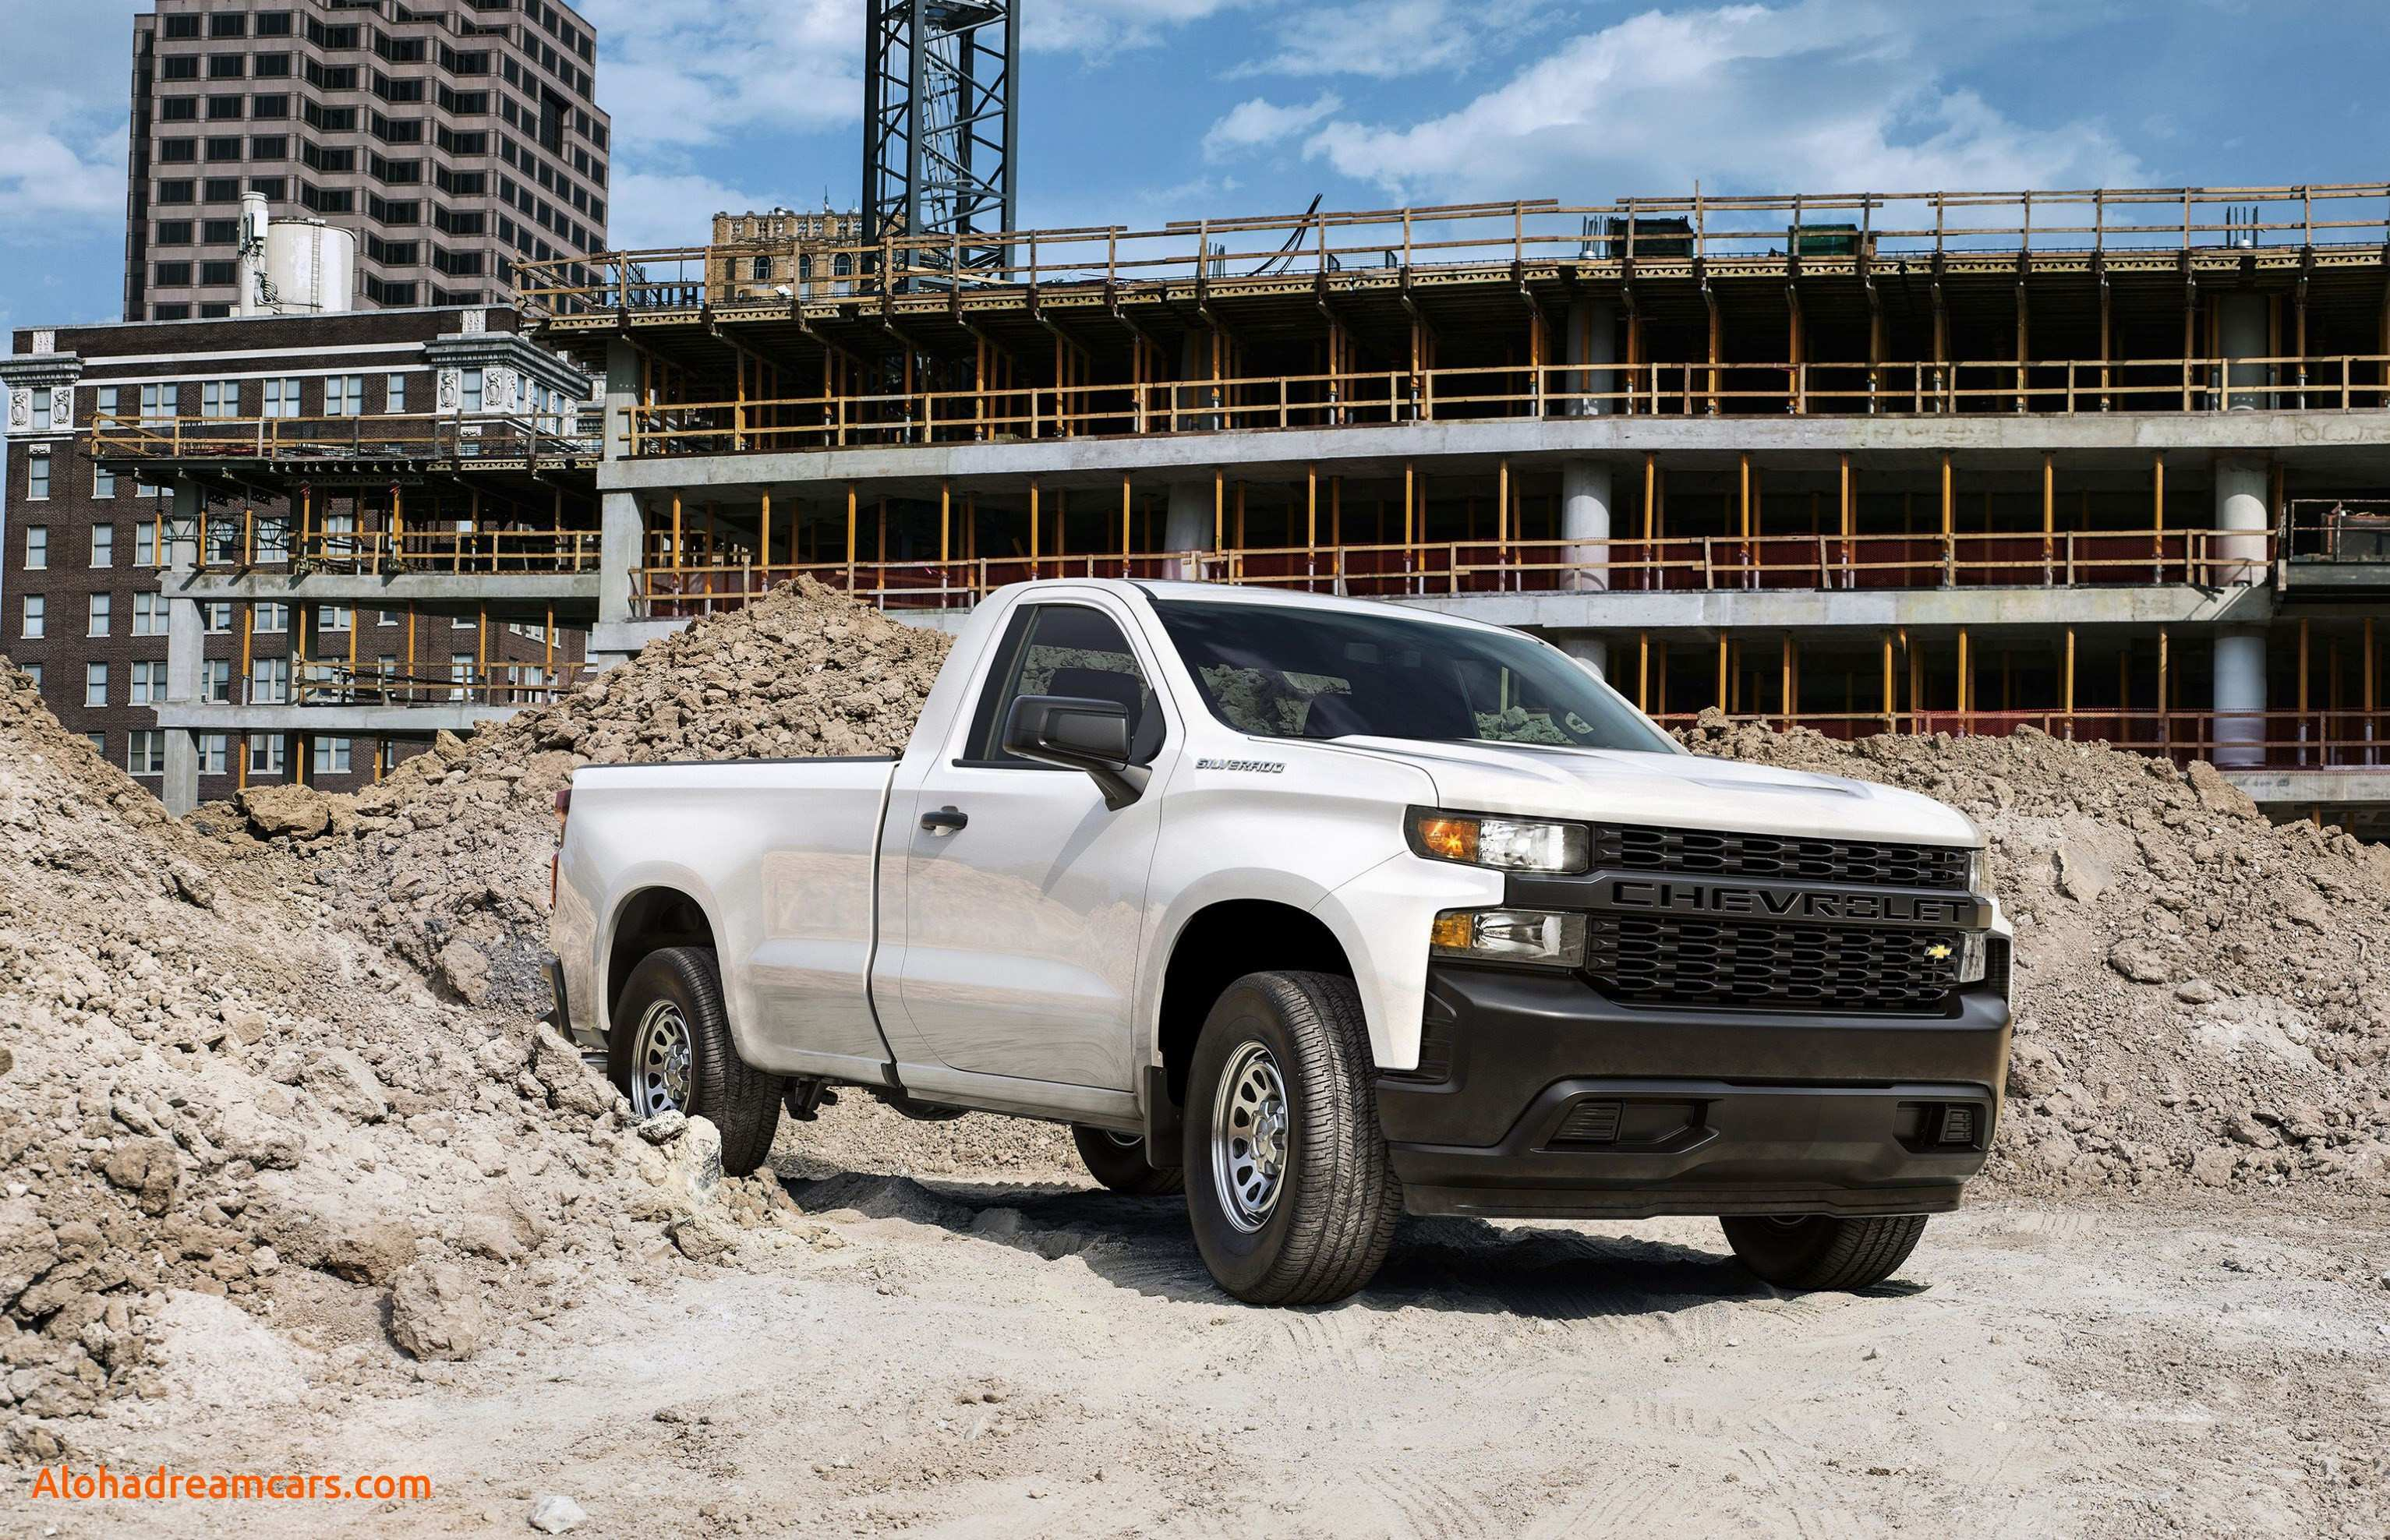 19 New New 2019 Chevrolet 4500 And 5500 Review And Specs Price by New 2019 Chevrolet 4500 And 5500 Review And Specs